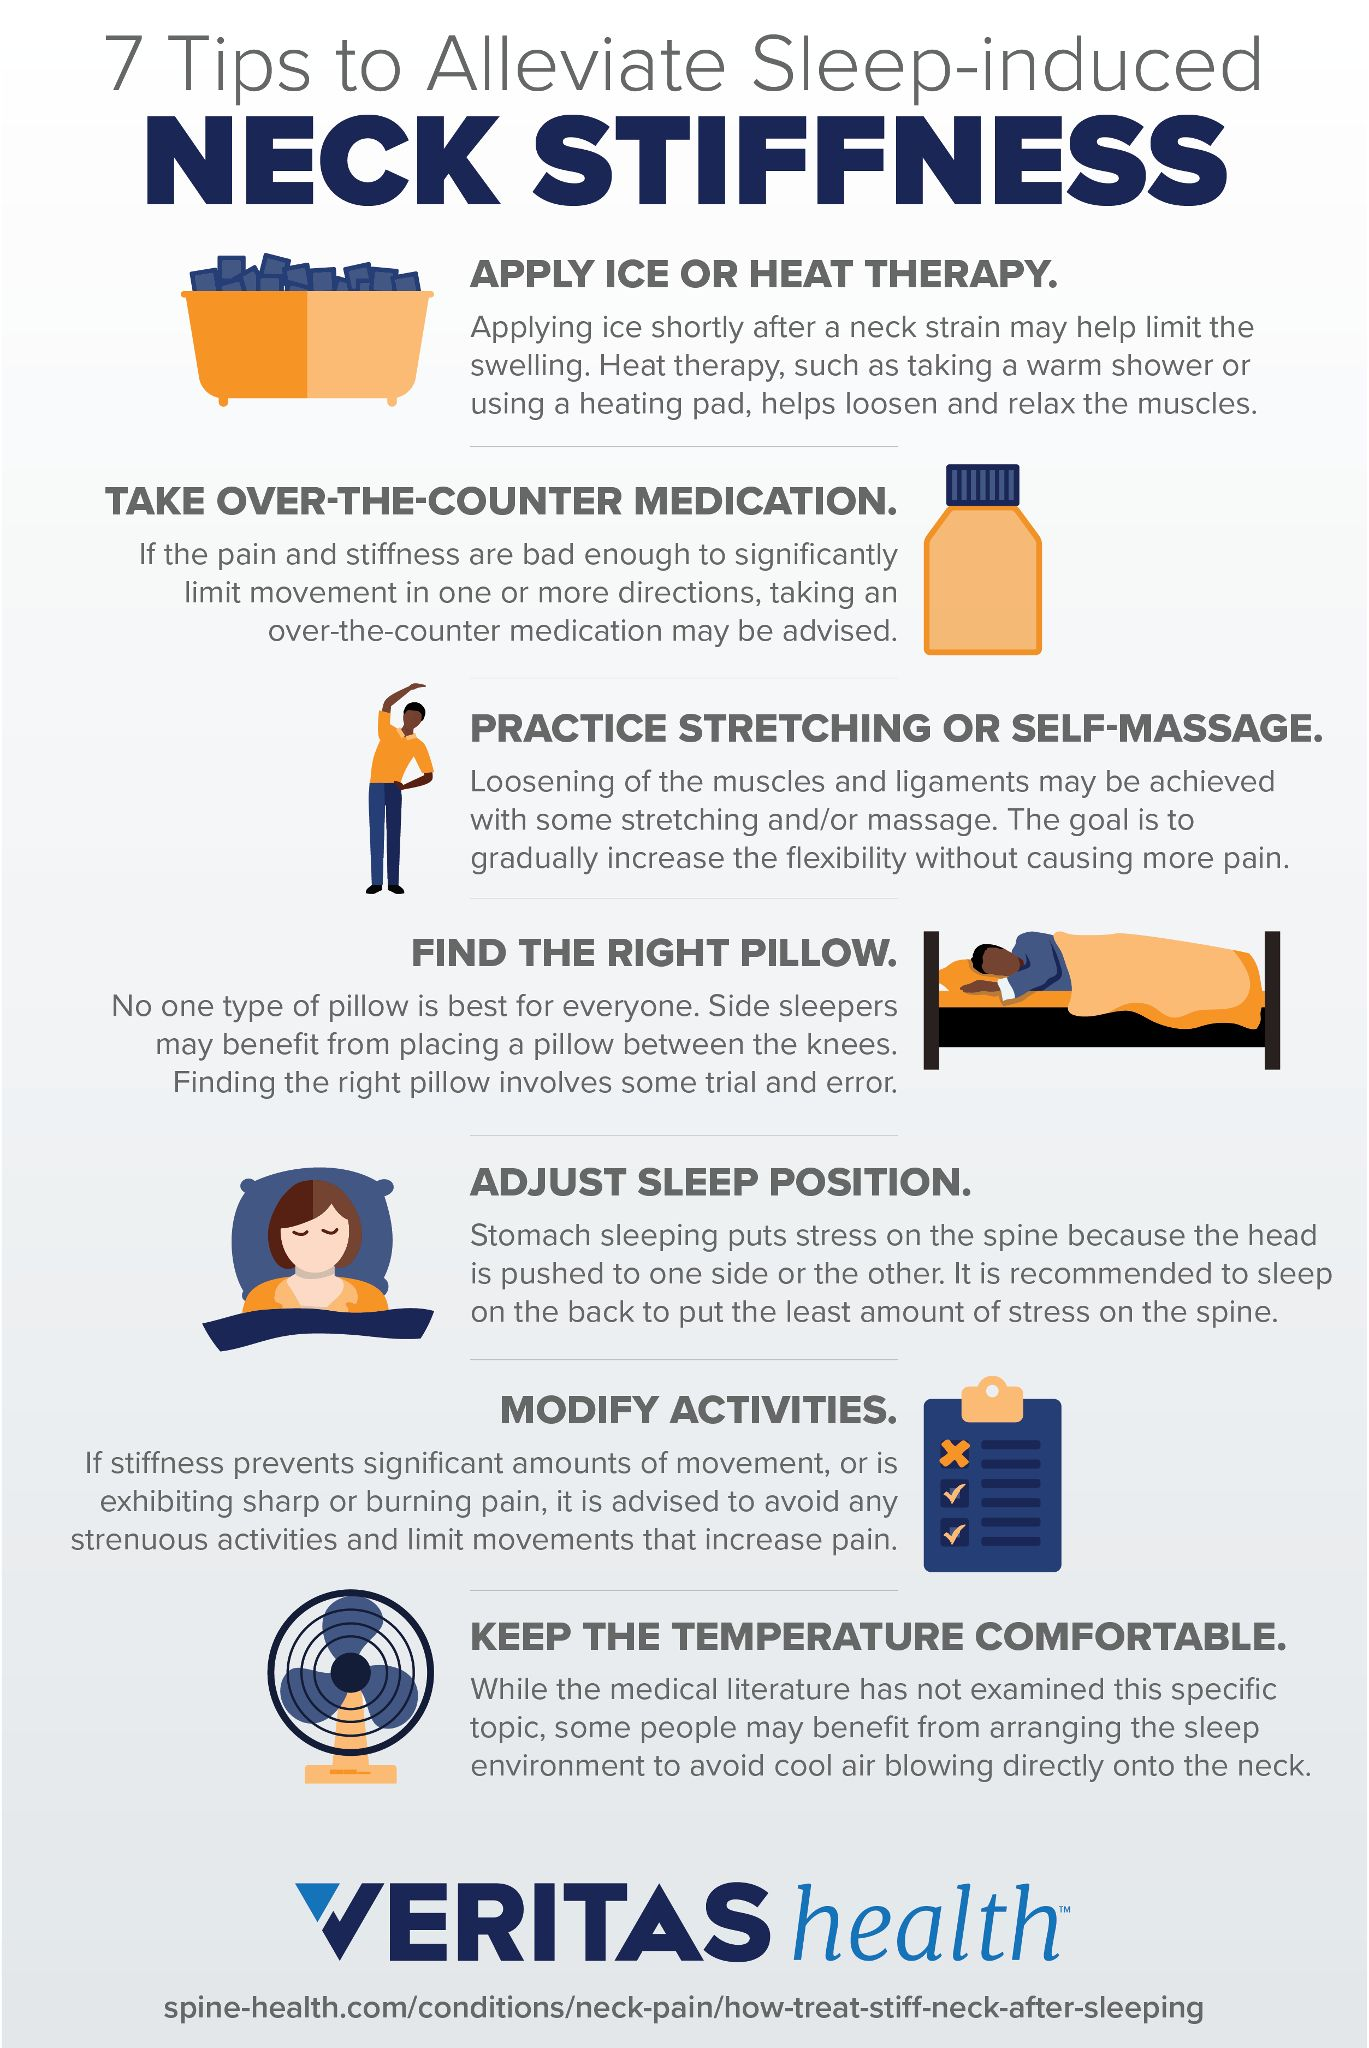 How Can a Pillow Cause Neck Pain and Headaches?